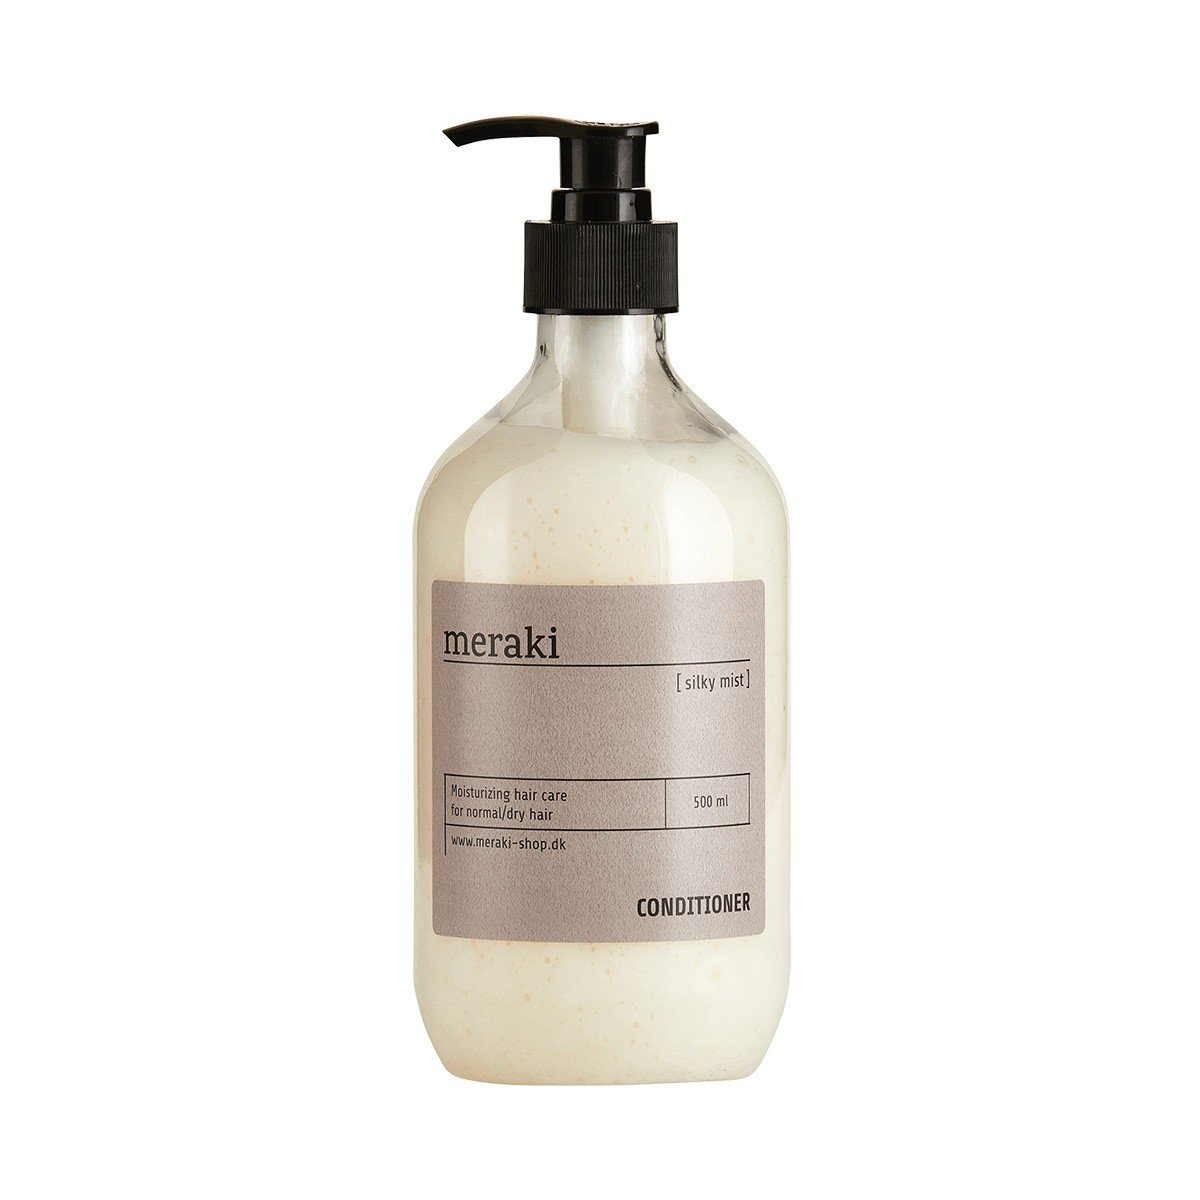 MERAKI Conditioner Silky Mist 5x500ml 5er Pack